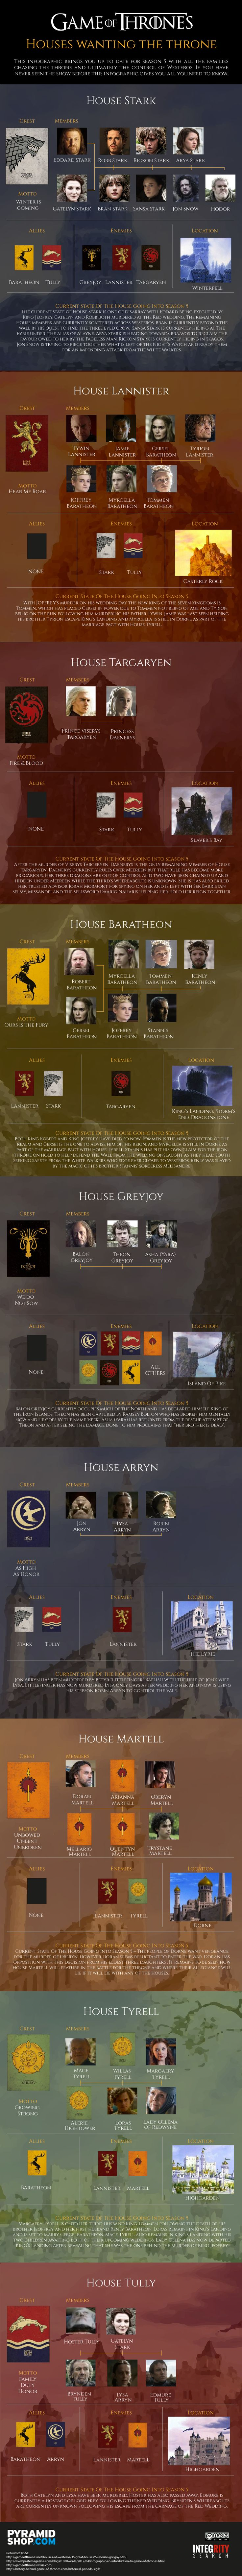 This infographic is based on the Game Of Thrones and with season five due to start, pyramidshop.com has produced an infographic which shows all the houses that are chasing the throne of Westeros. It shows the families of each house as well and their allies and enemies and also has a review of the state of each house leading into season five.